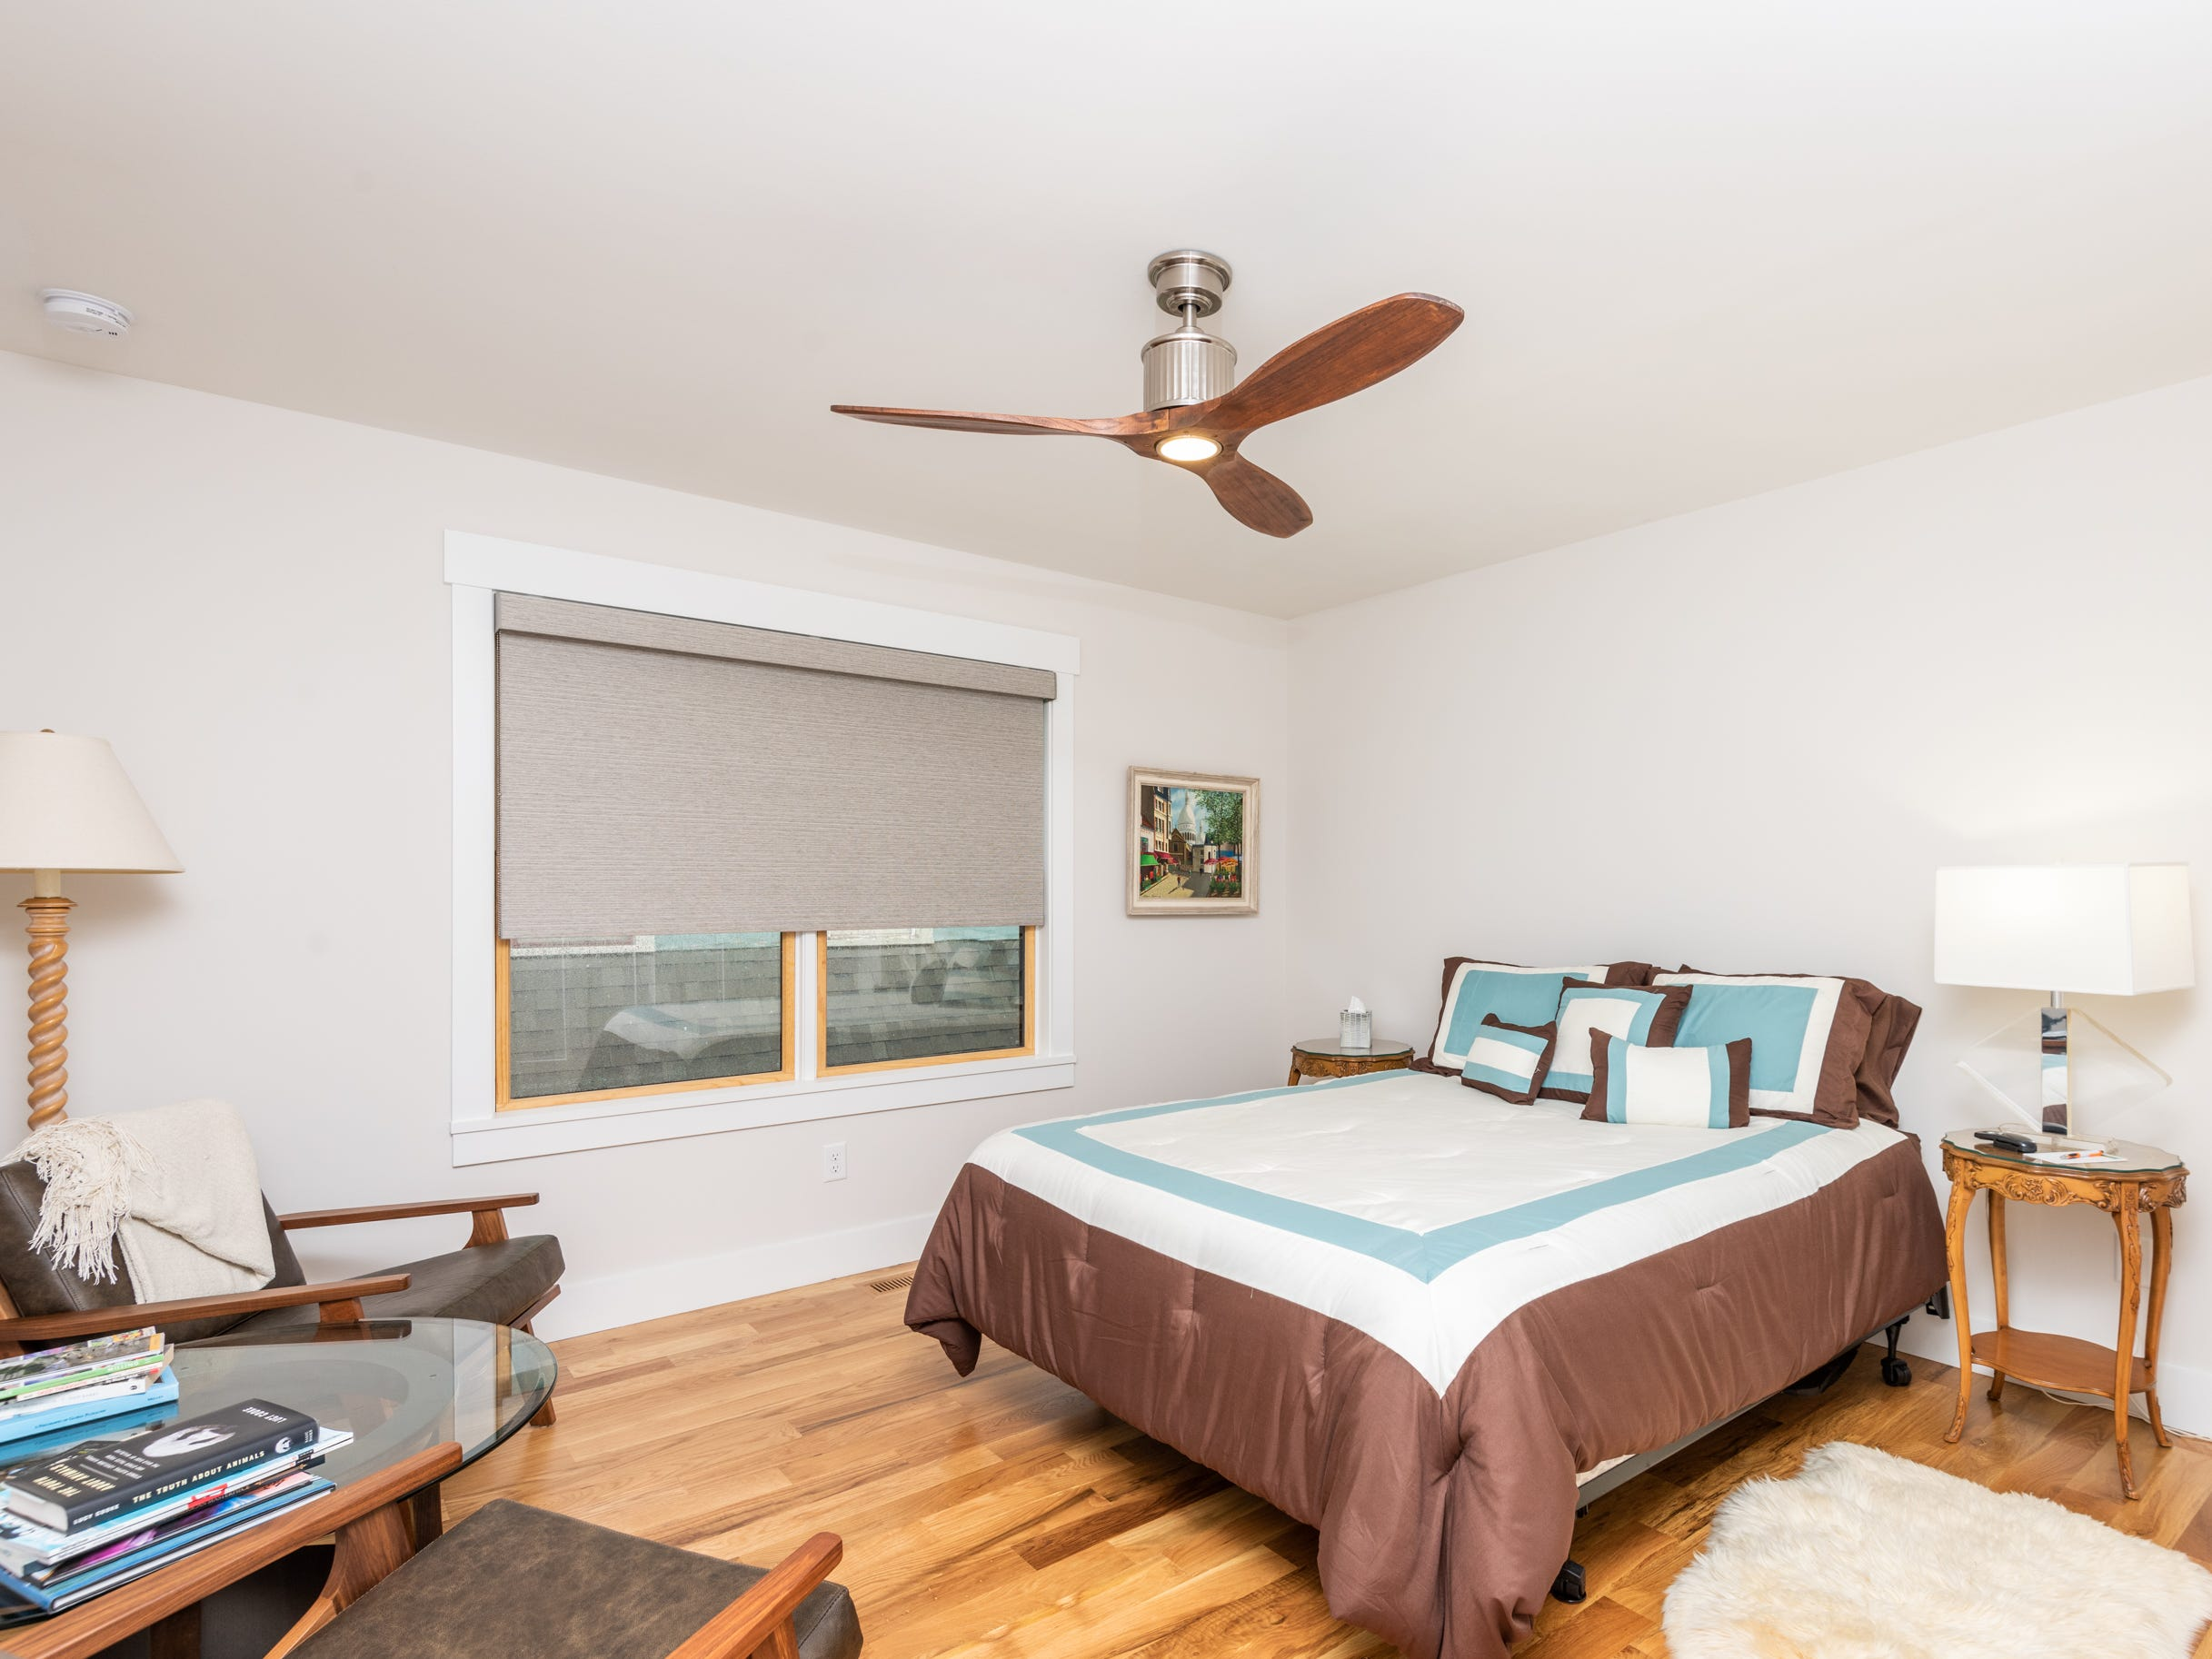 An upstairs bedroom keeps the design simple and uncluttered.